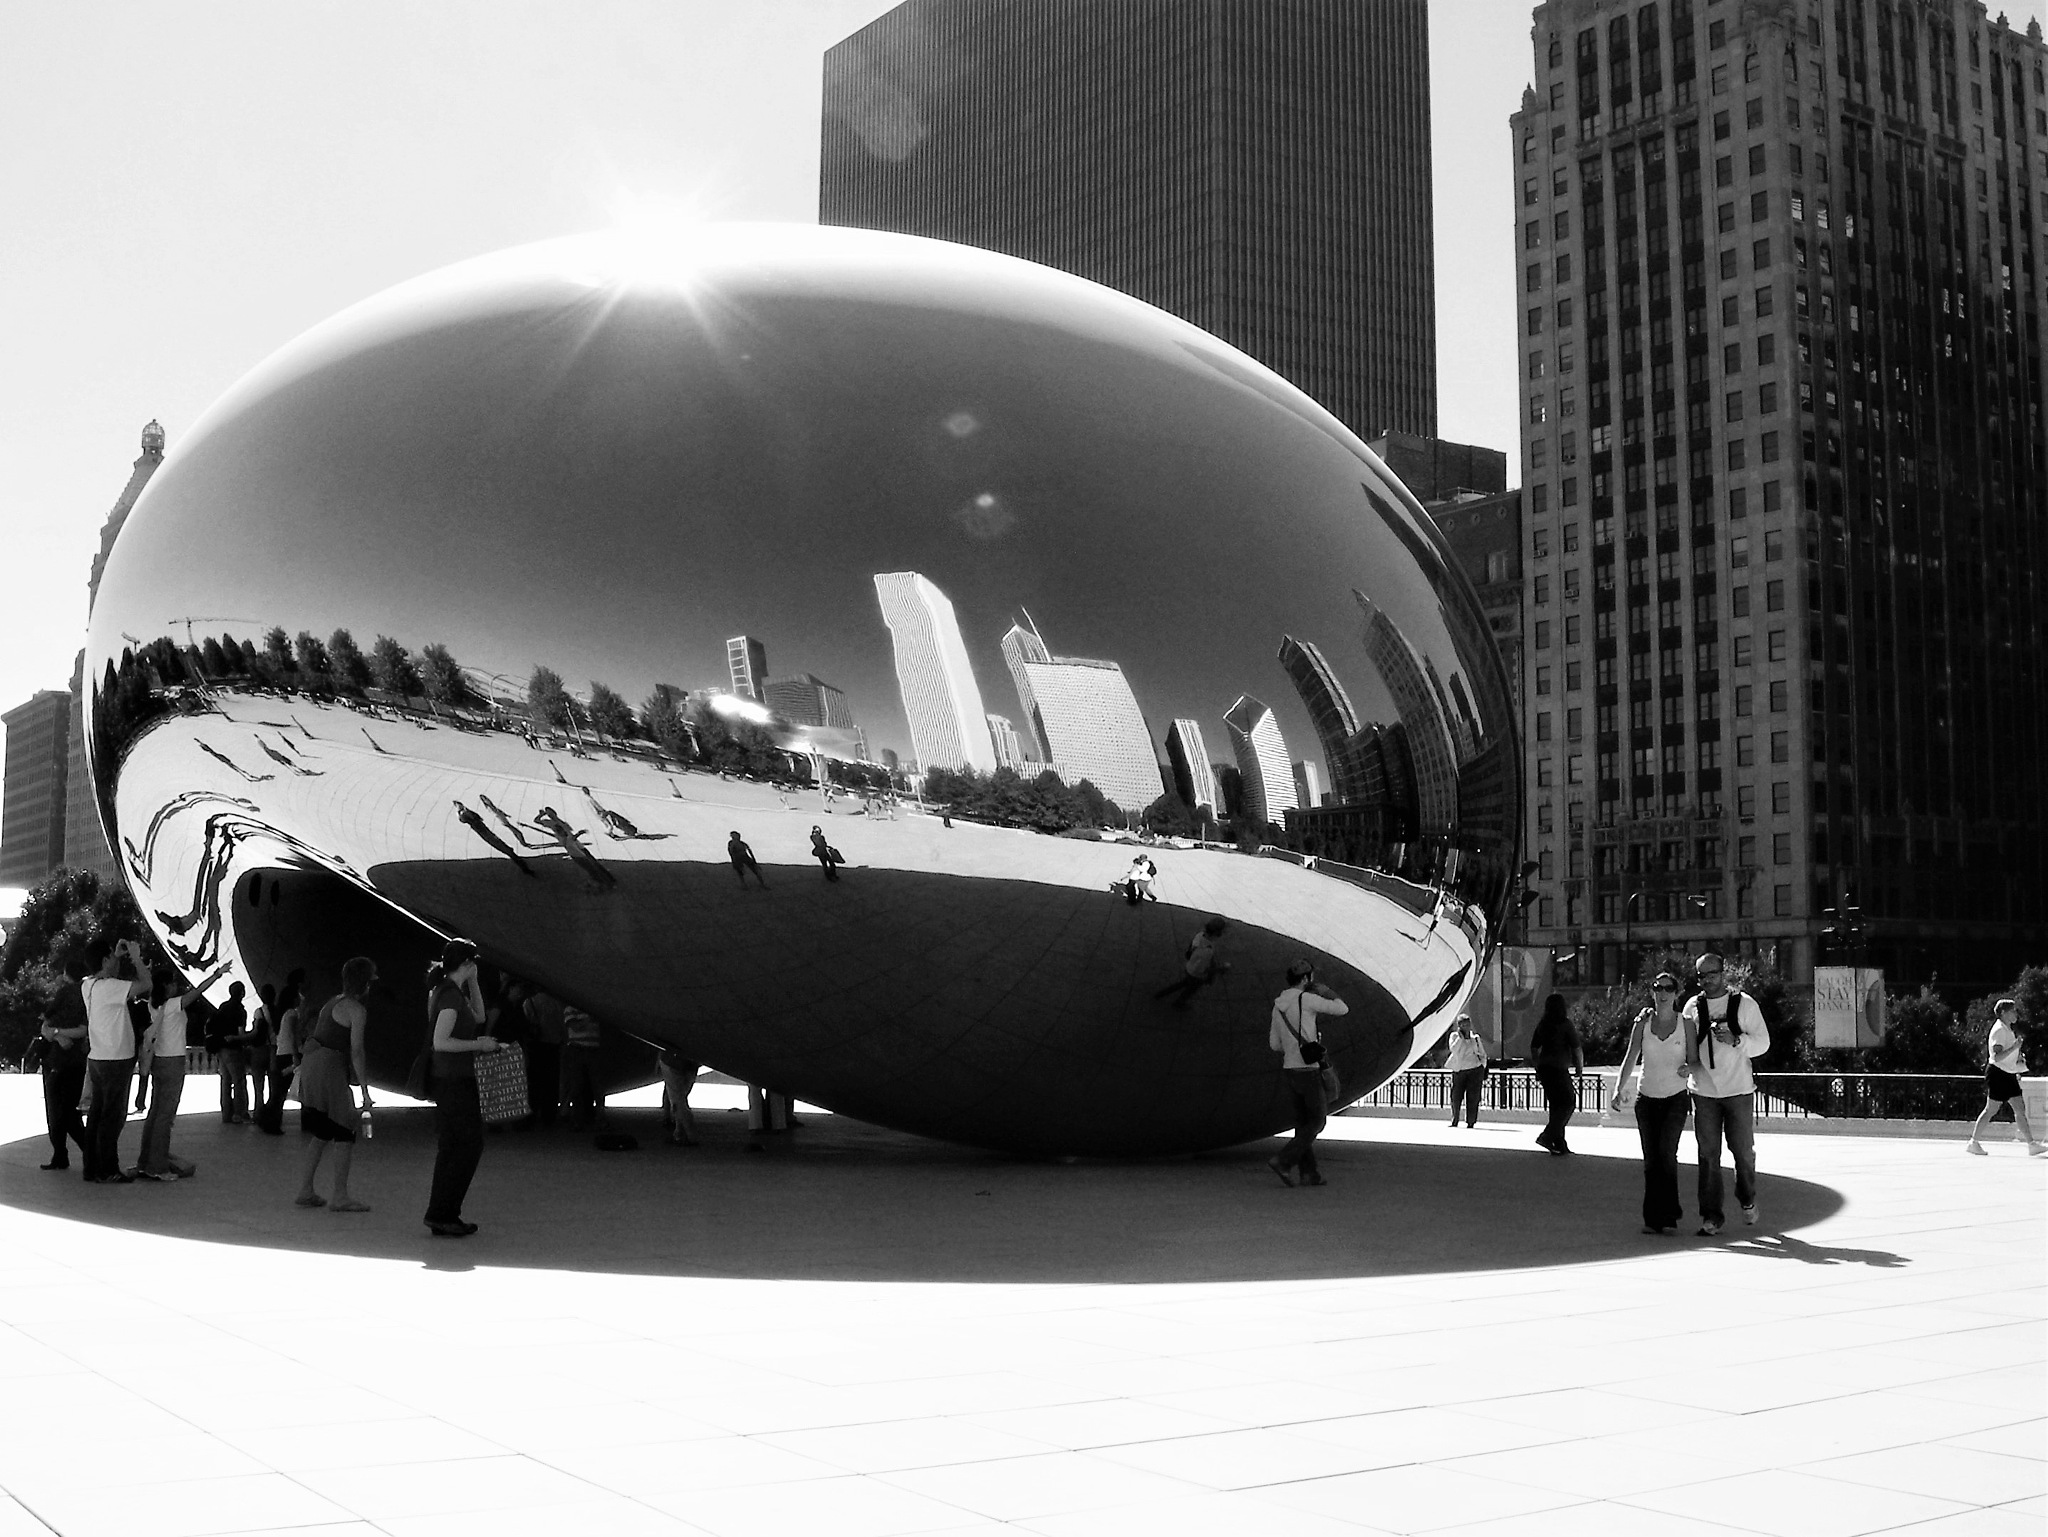 Meet the Bean-Black and white by Michele